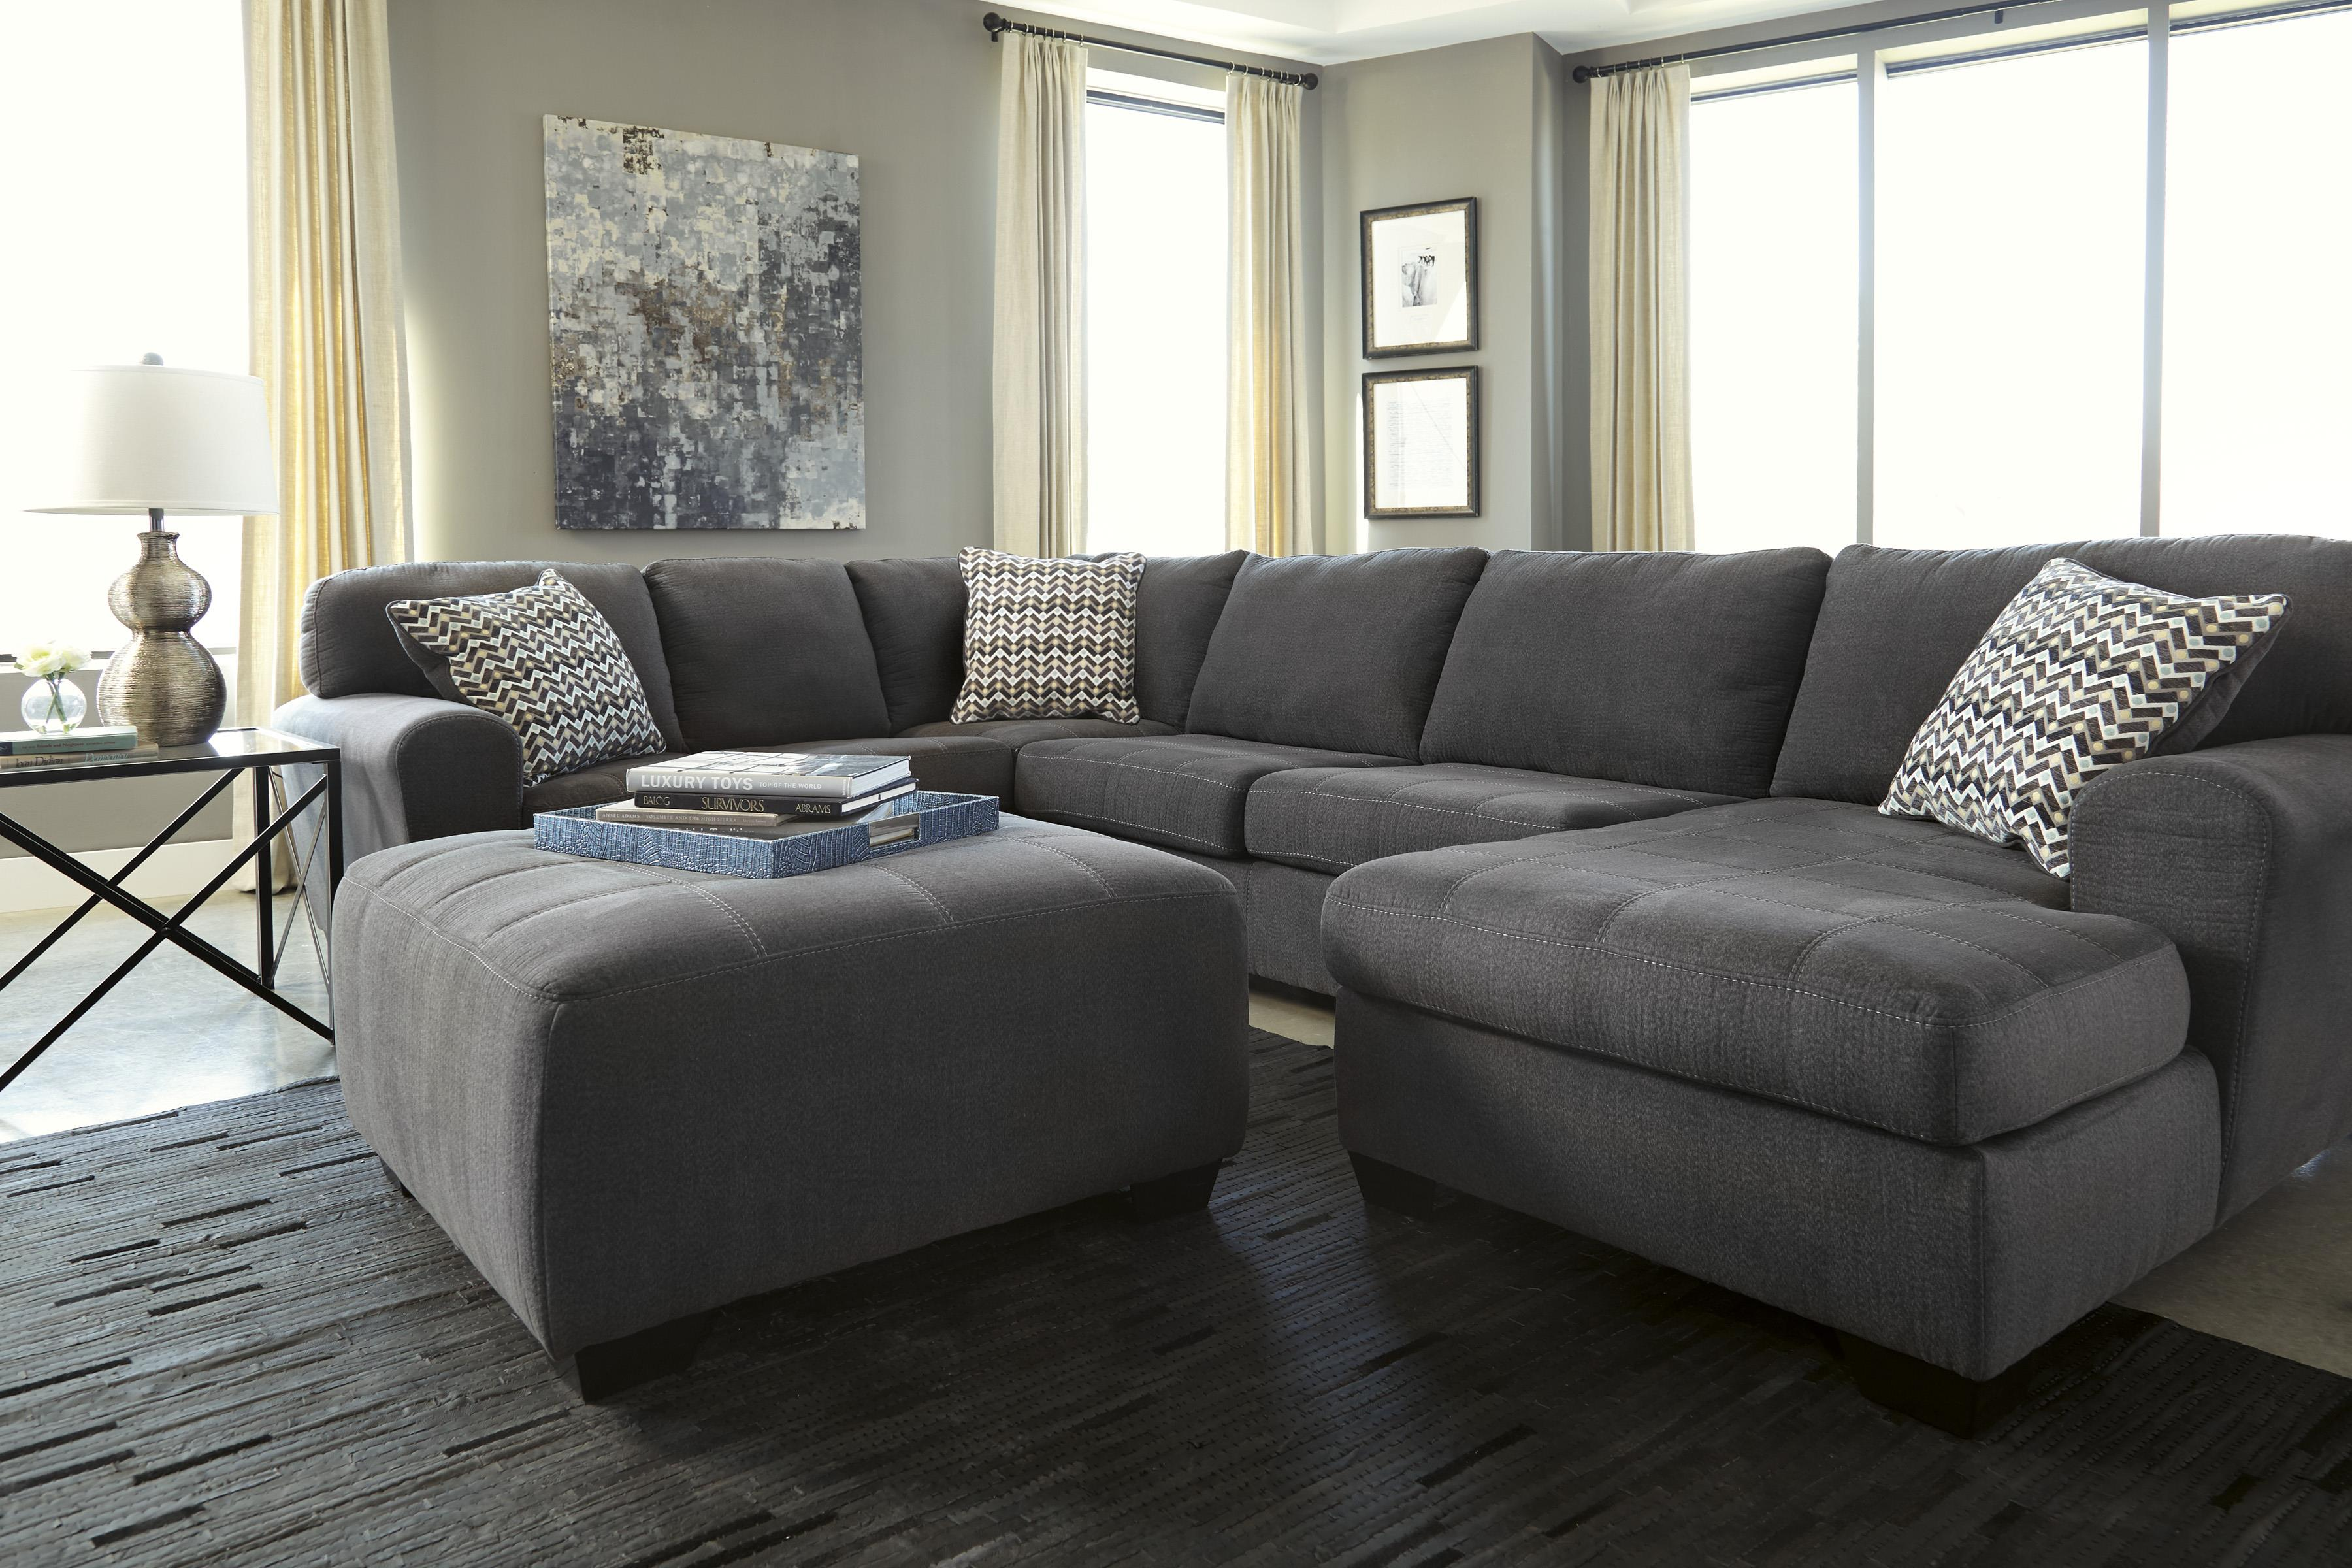 Benchcraft sorenton contemporary 3 piece sectional with for 3 piece sectional sofa with chaise